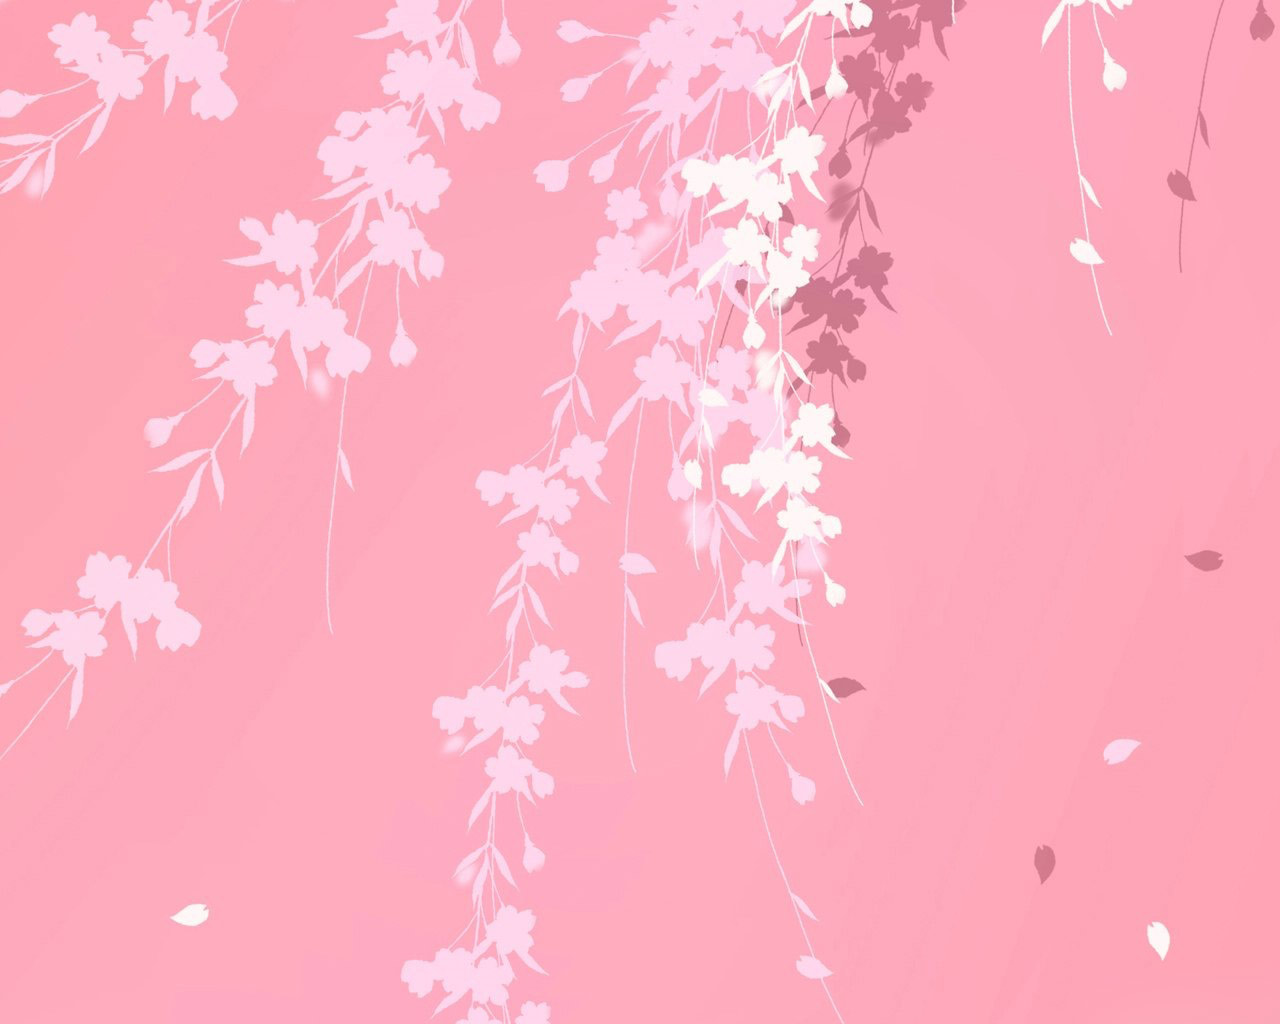 Download Pink background branches windows 7 hd Wallpaper in high 1280x1024